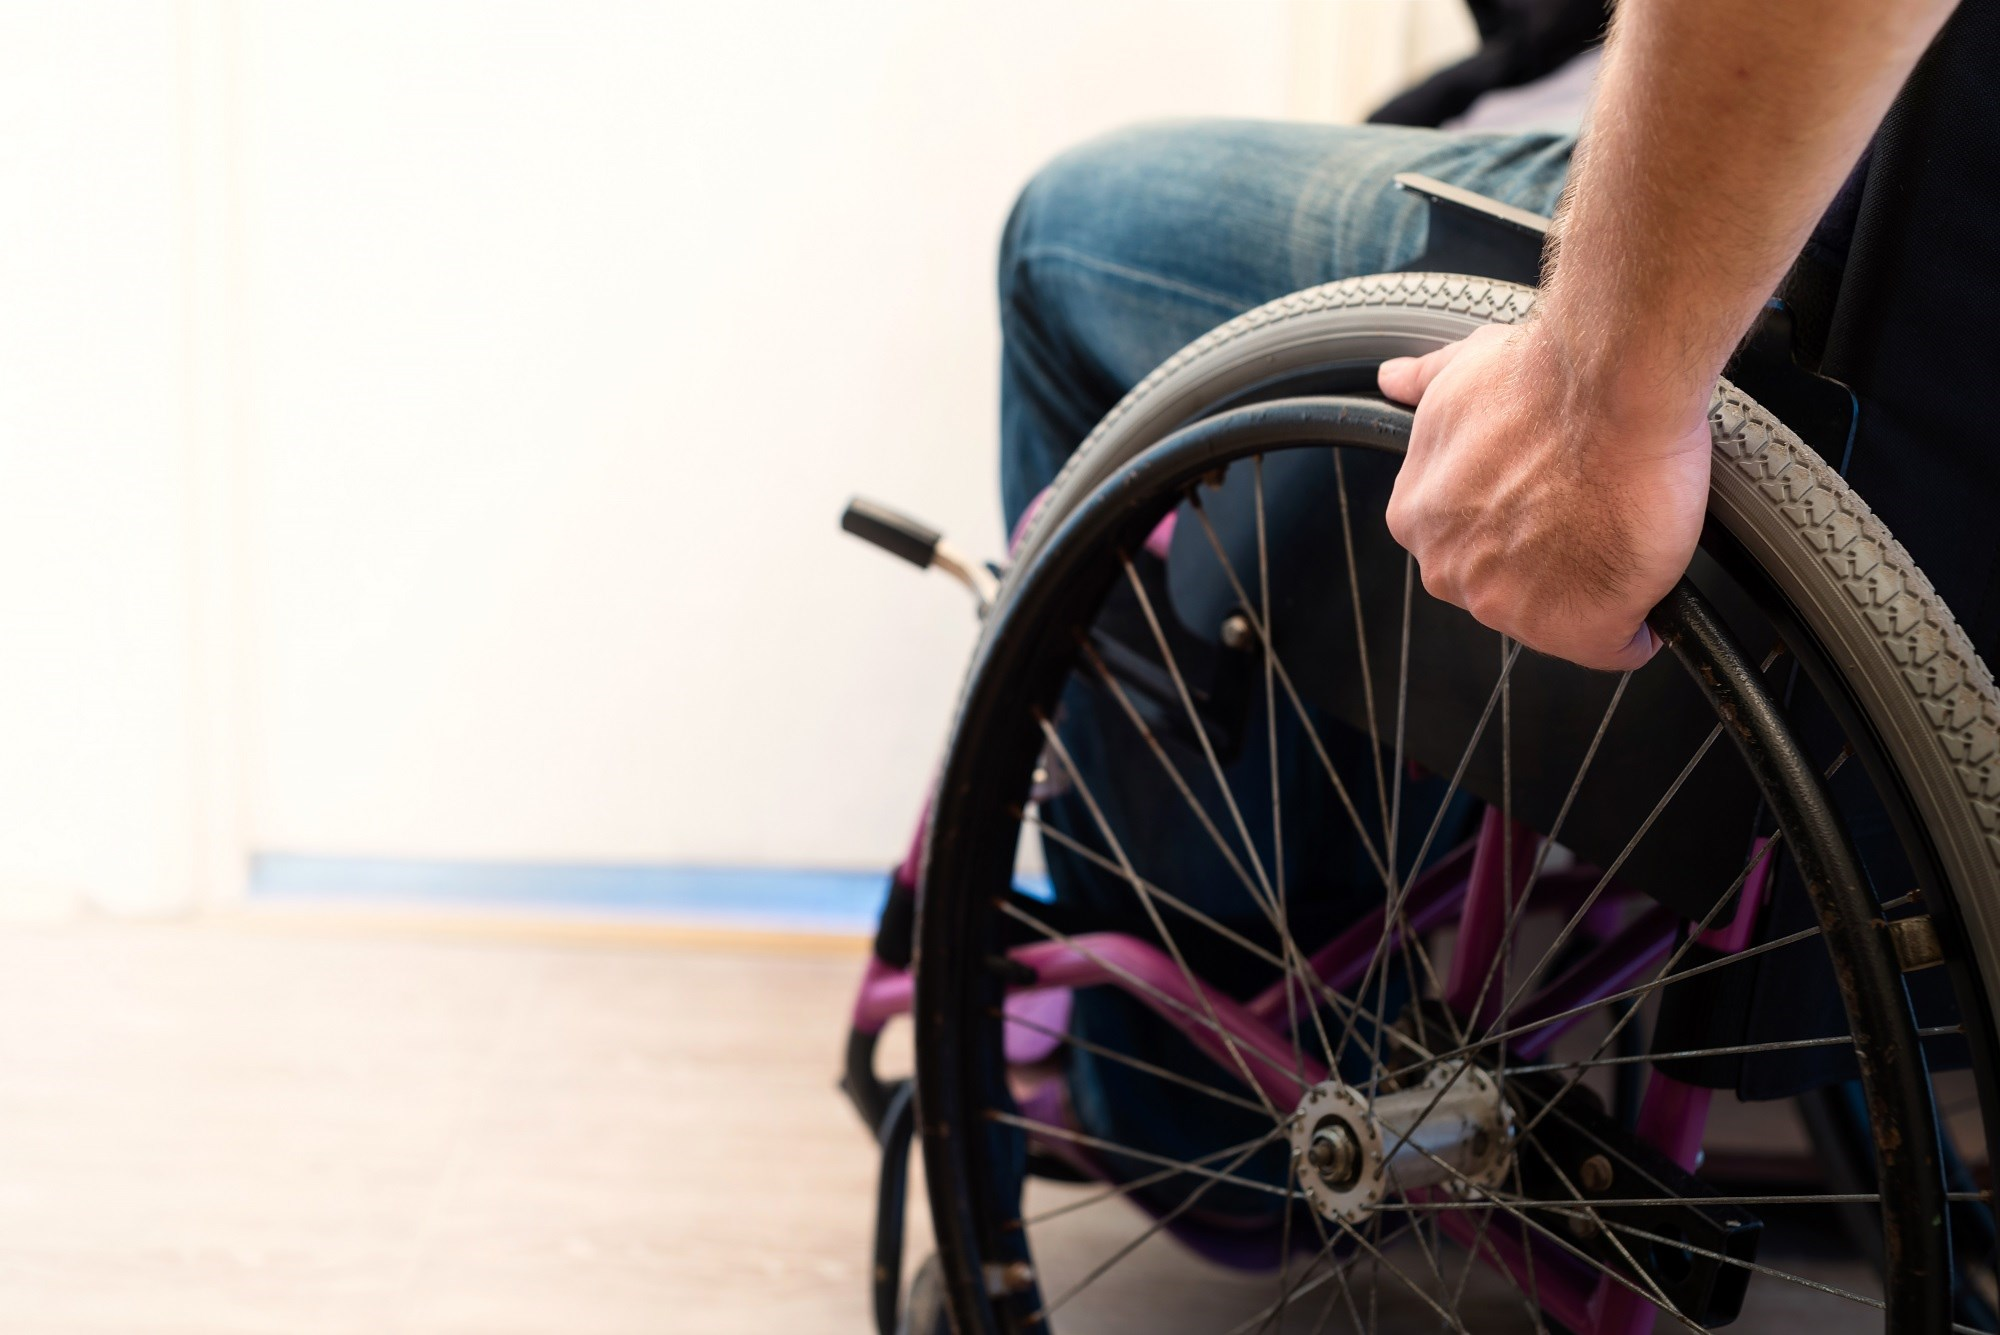 This study was part of a larger mixed-methods study that assessed facilitators and barriers to living with chronic pain after spinal cord injury.